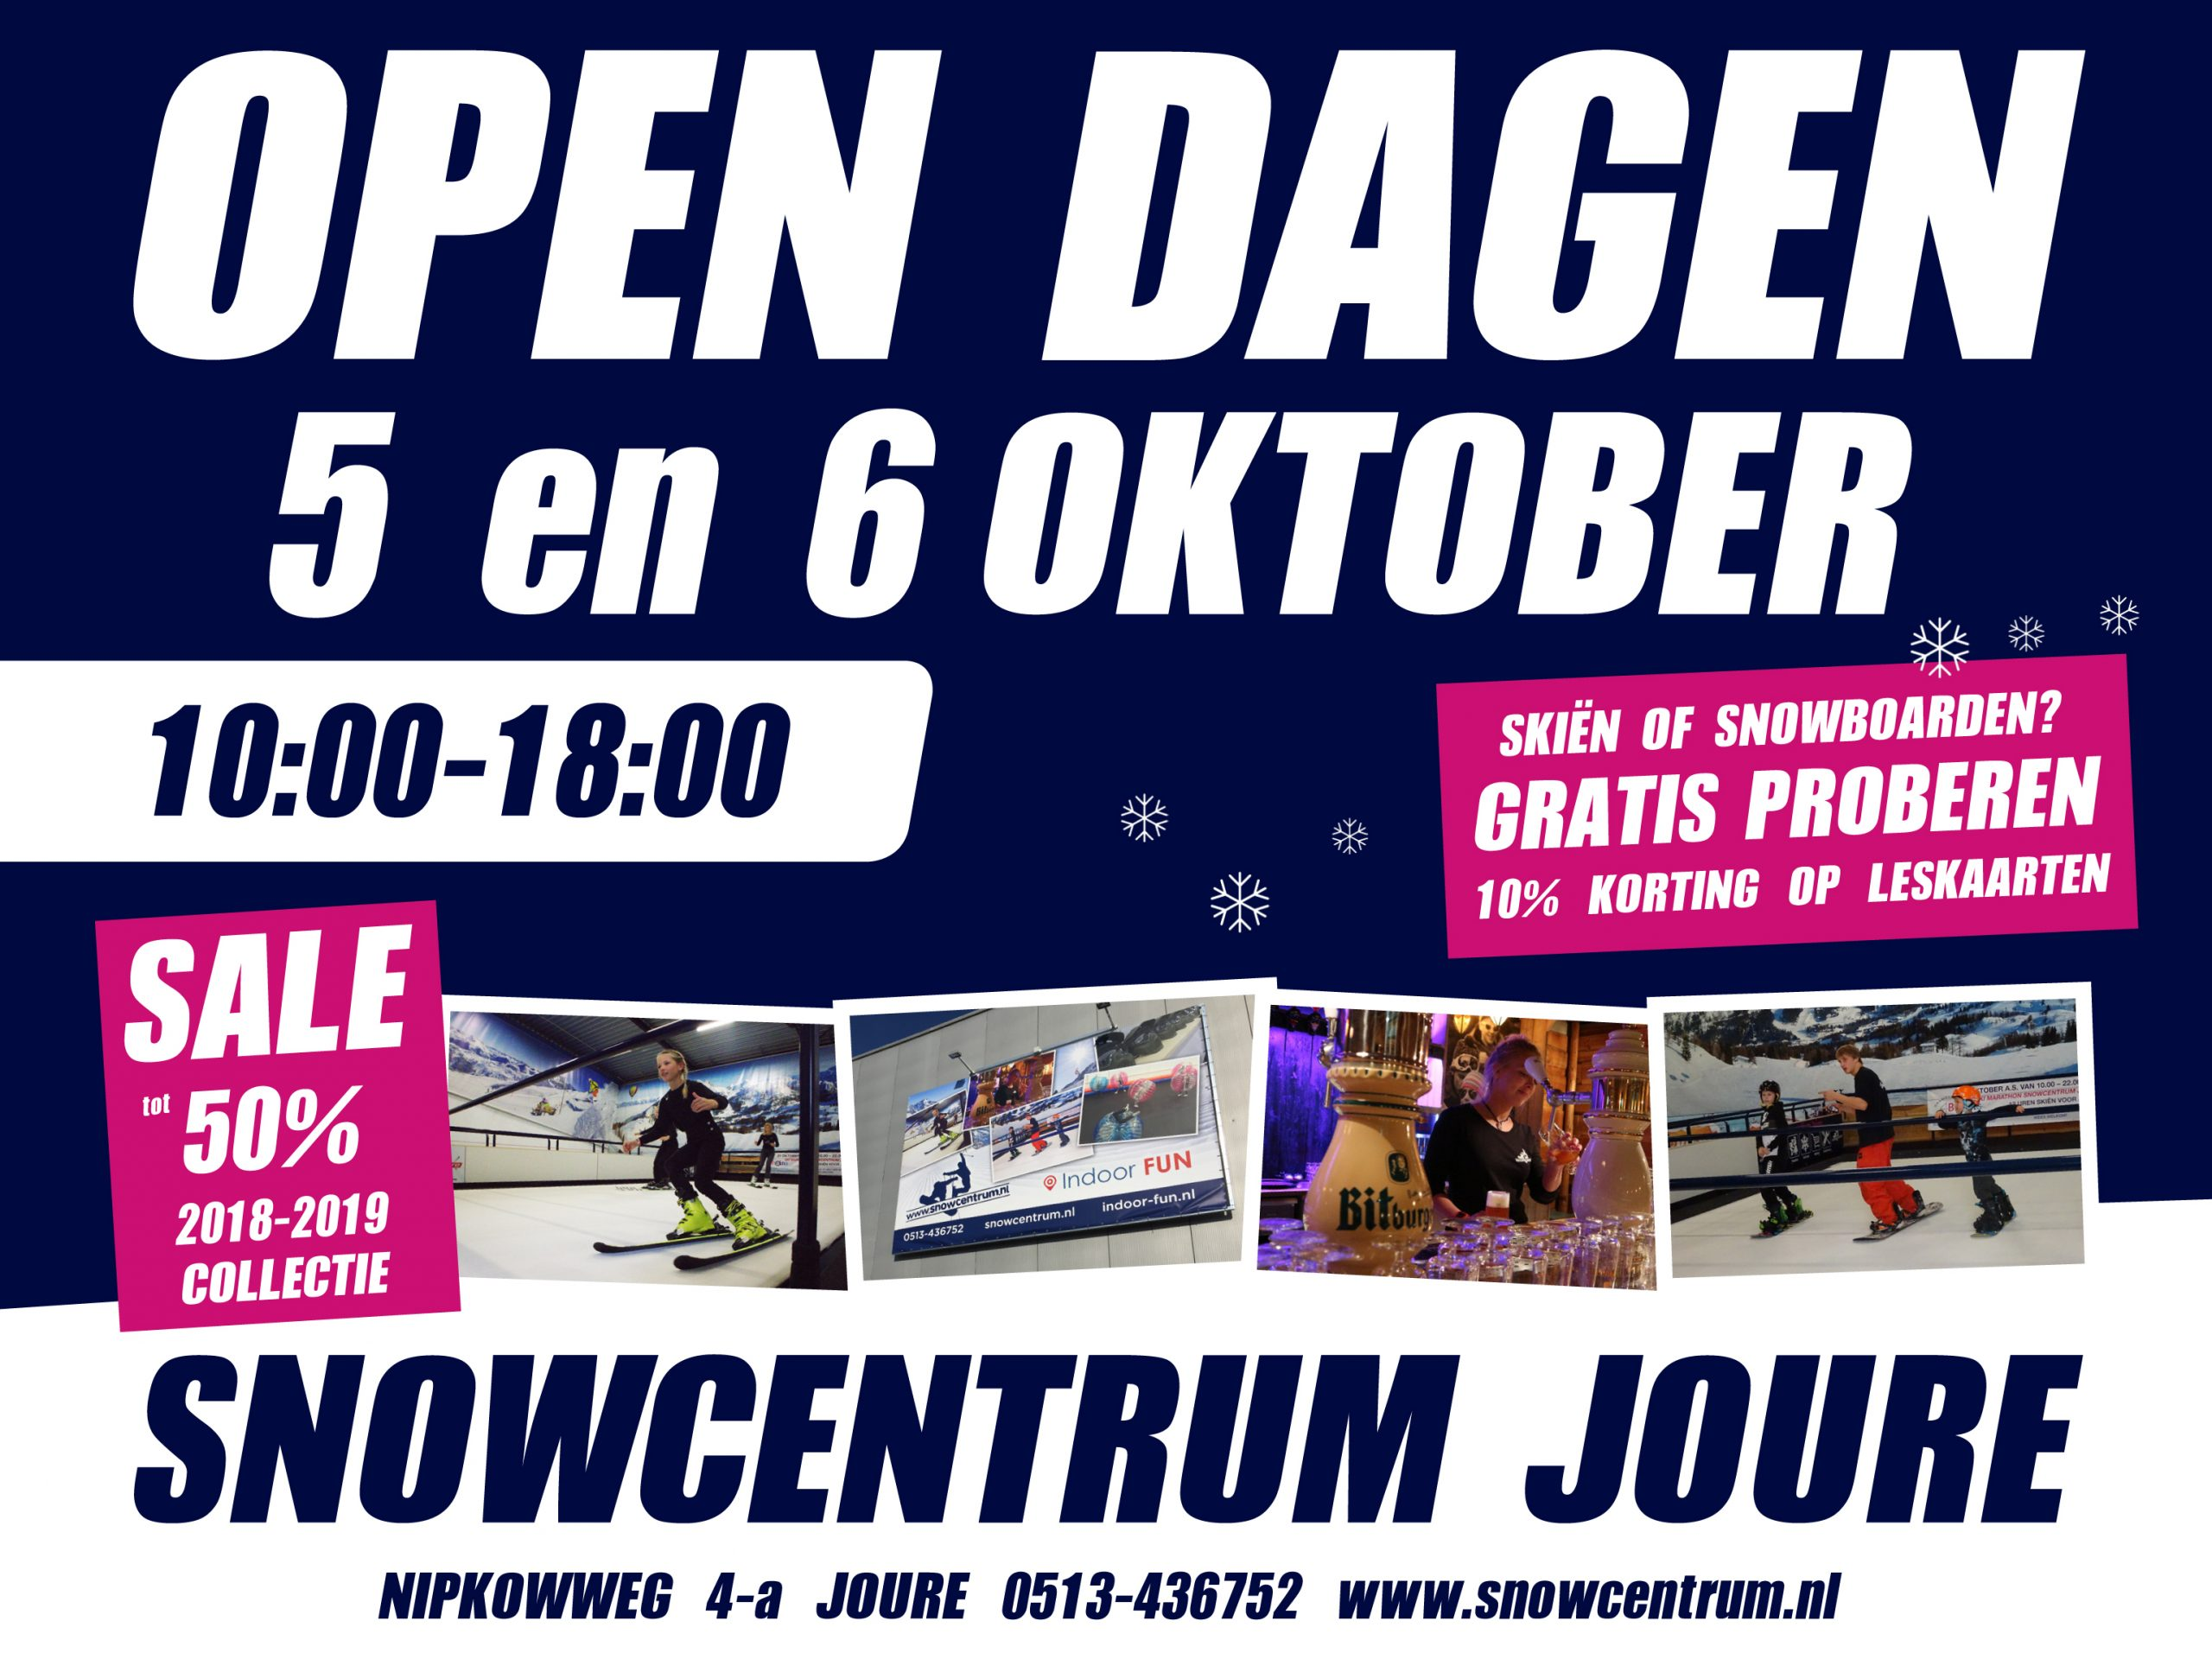 open dagen snowcentrum joure 2019